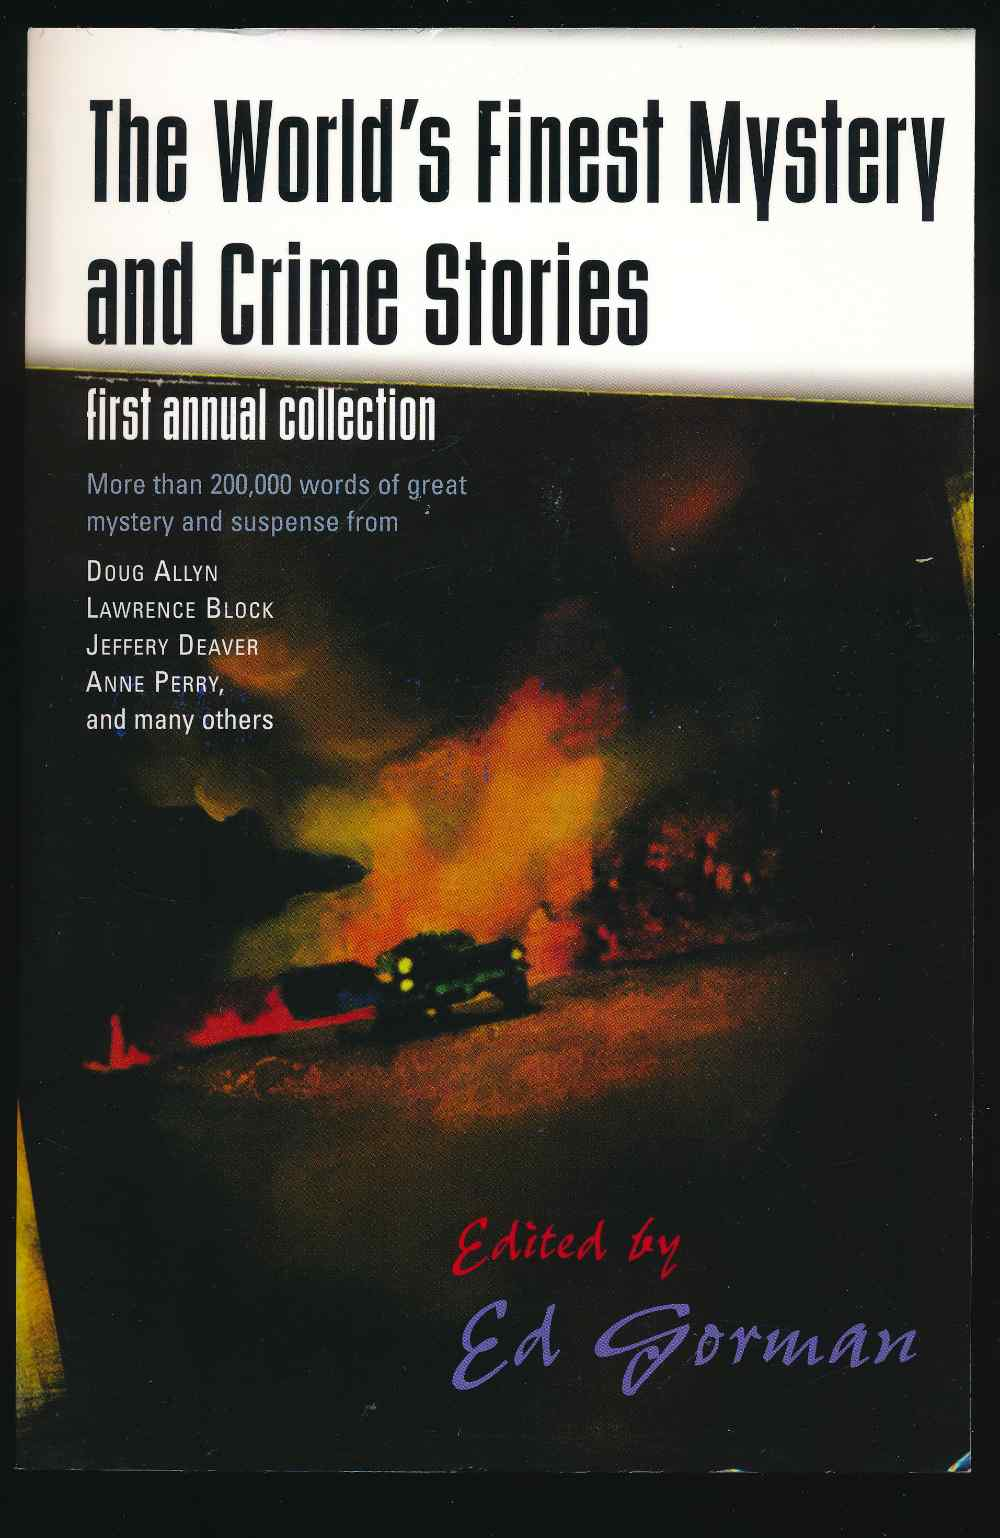 The world's finest mystery and crime stories : first annual collection